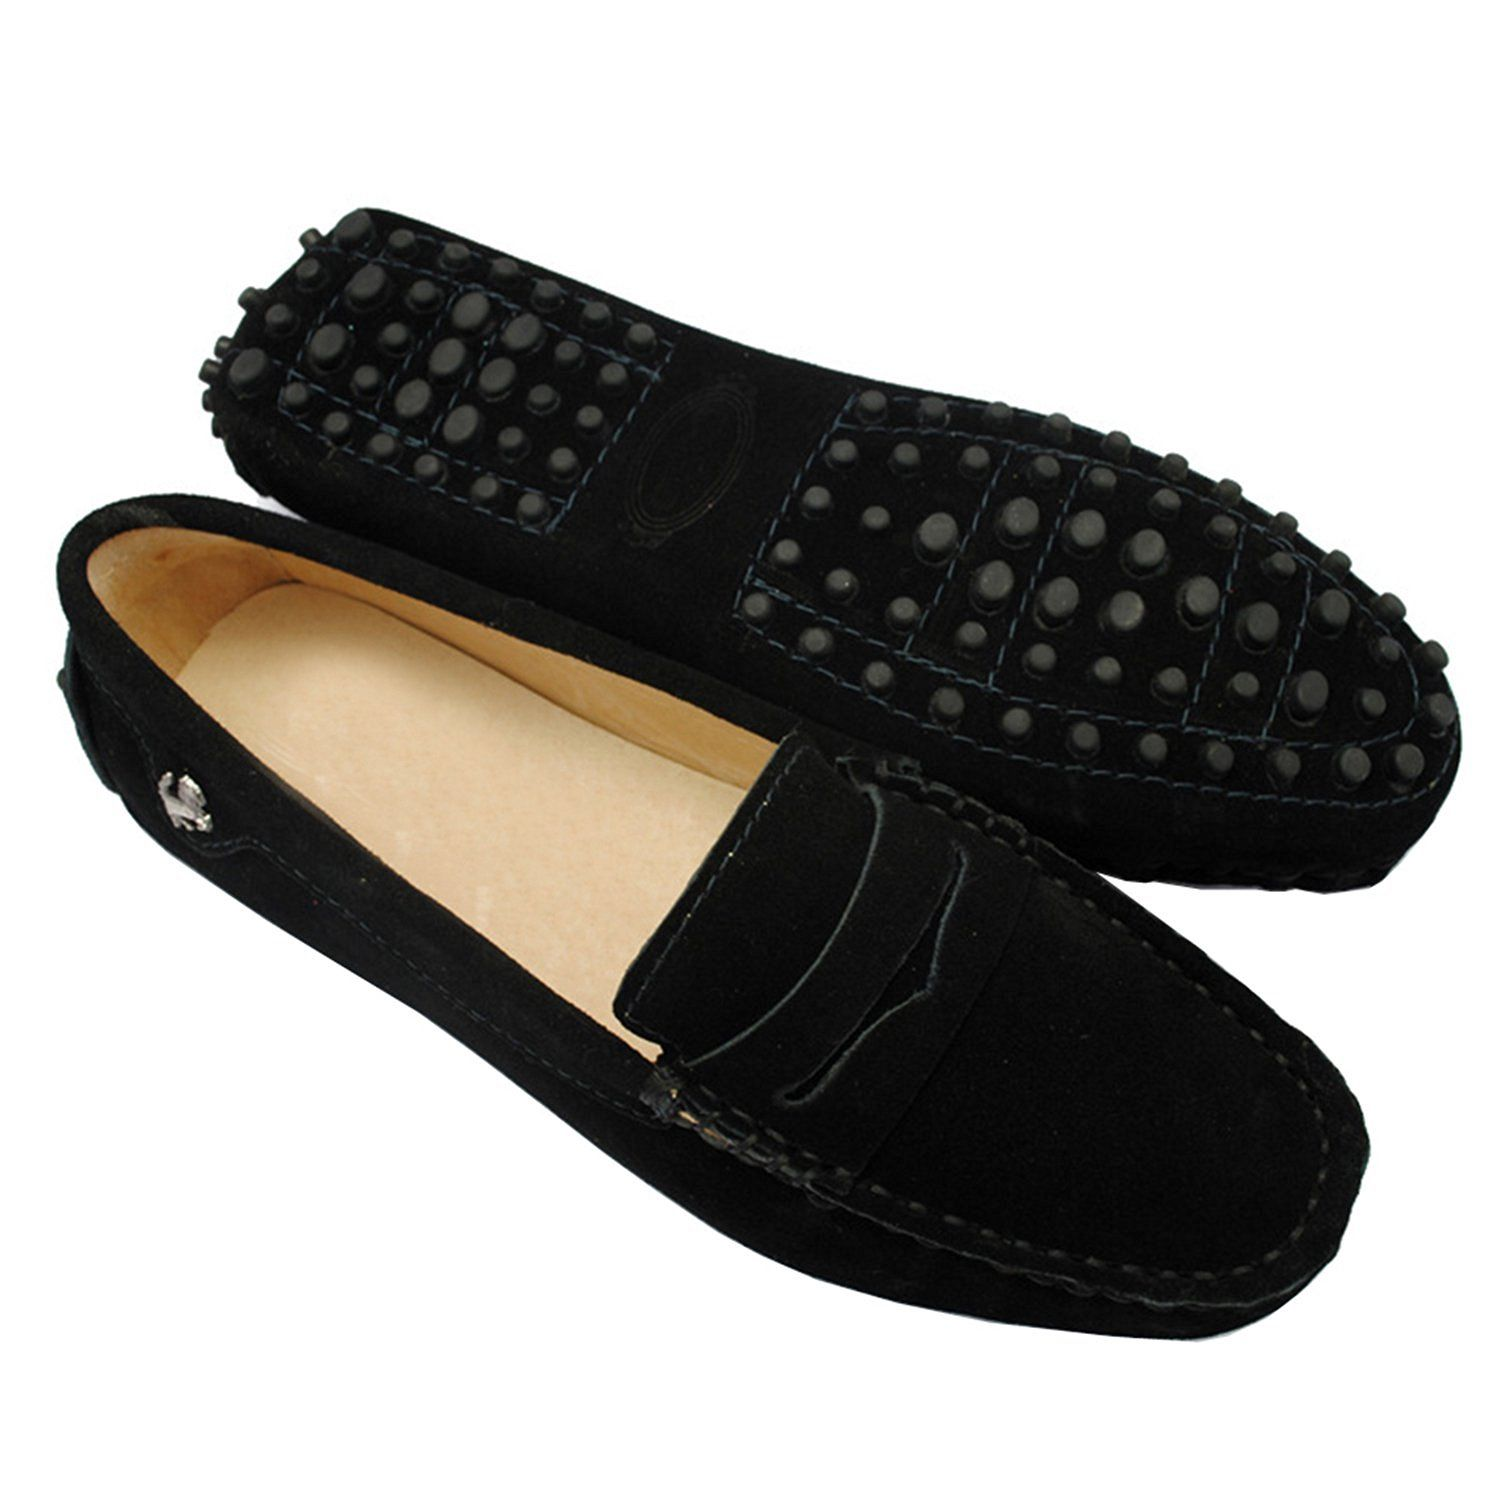 f2dd6bfde01 Minitoo Womens Casual Comfortable Suede Leather Driving Moccasins Loafers  Boat Shoes Flats -- Read more reviews of the product by visiting the link  on the ...